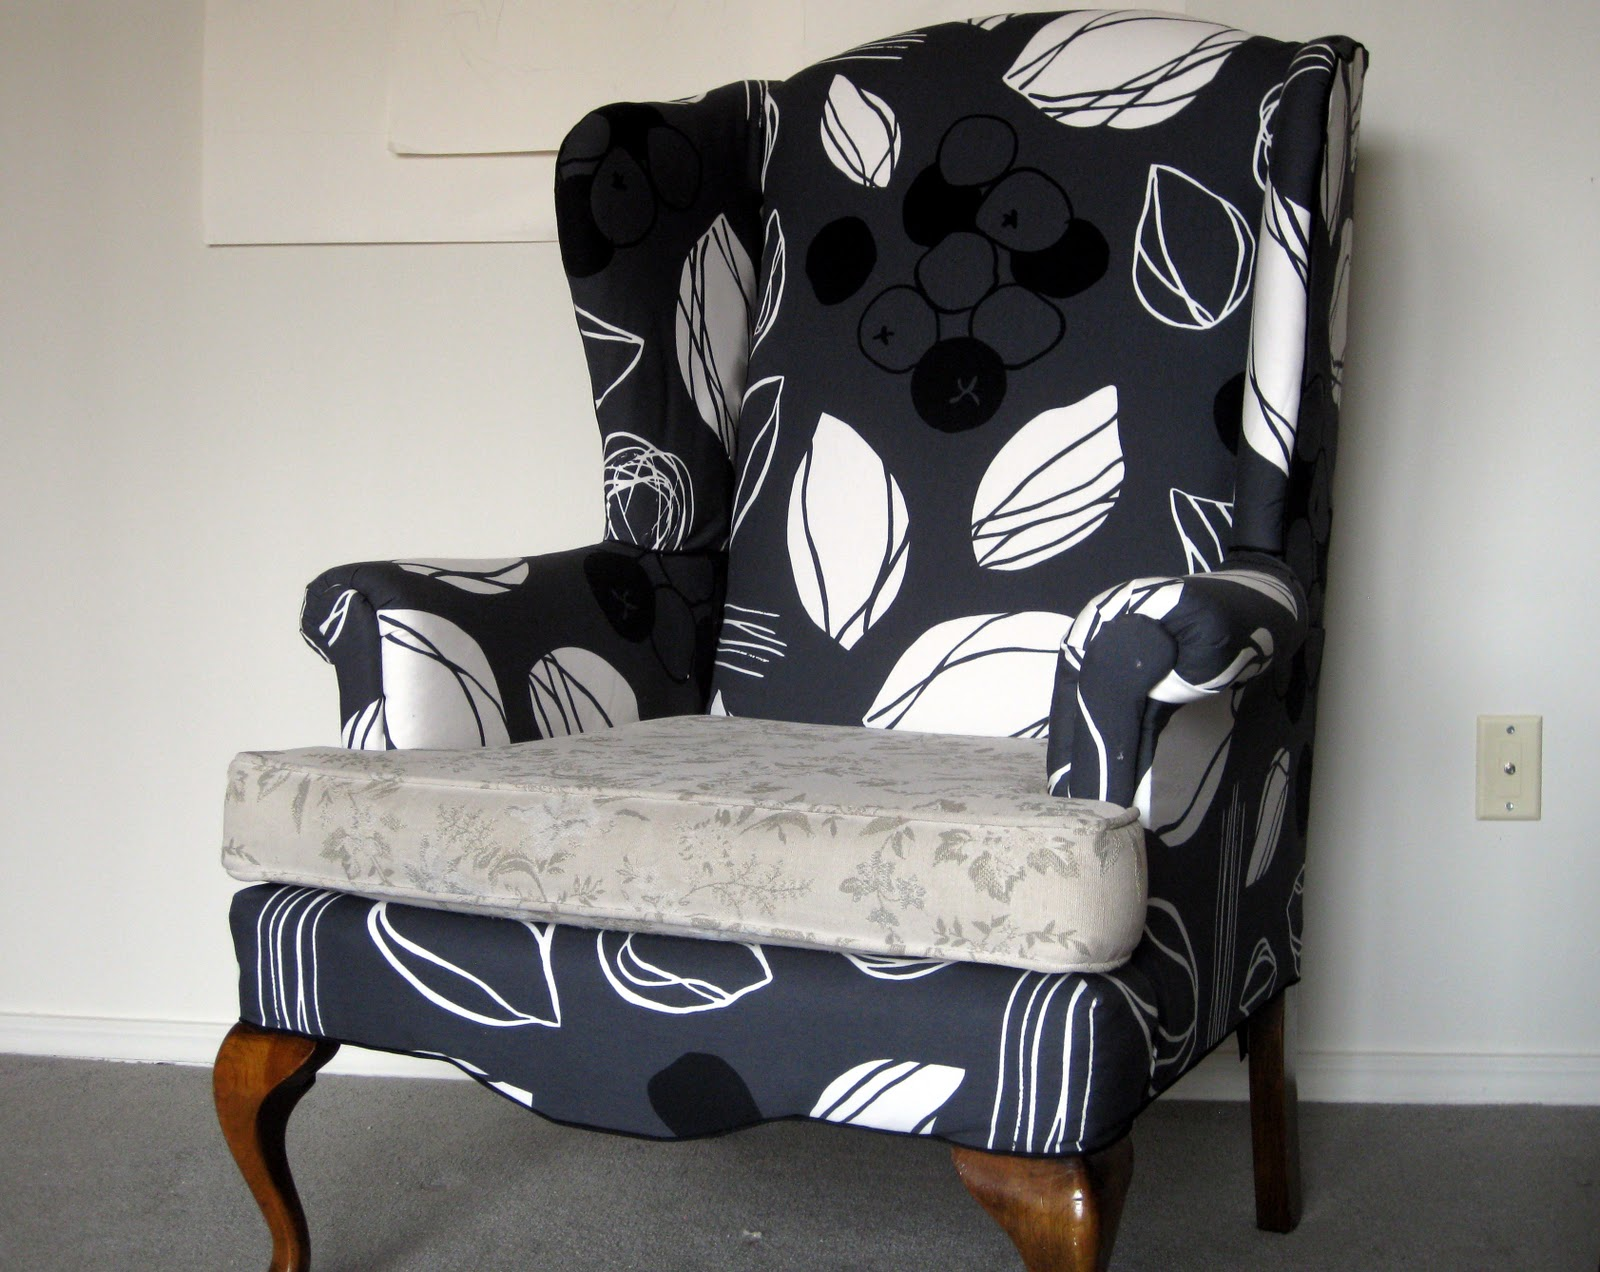 Wingback Chair Re Upholstery Project: Recovering The Chair